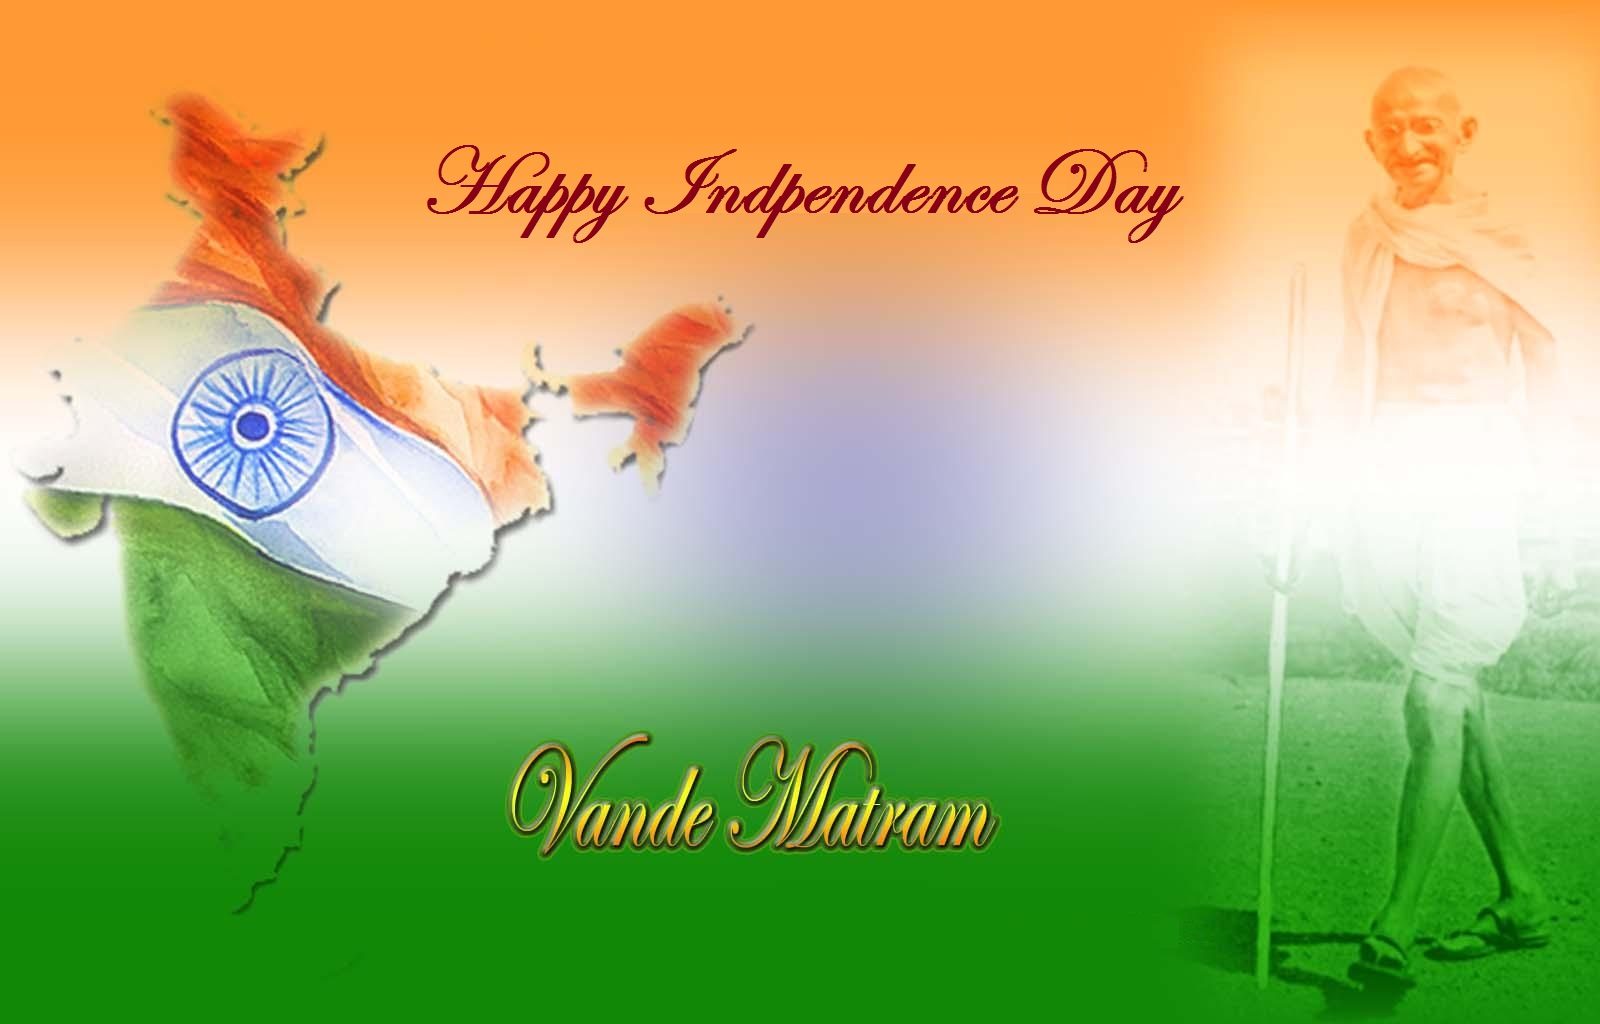 Birthday Wallpaper Gana Hot And Sexy Wishes Images Of India Independence Day